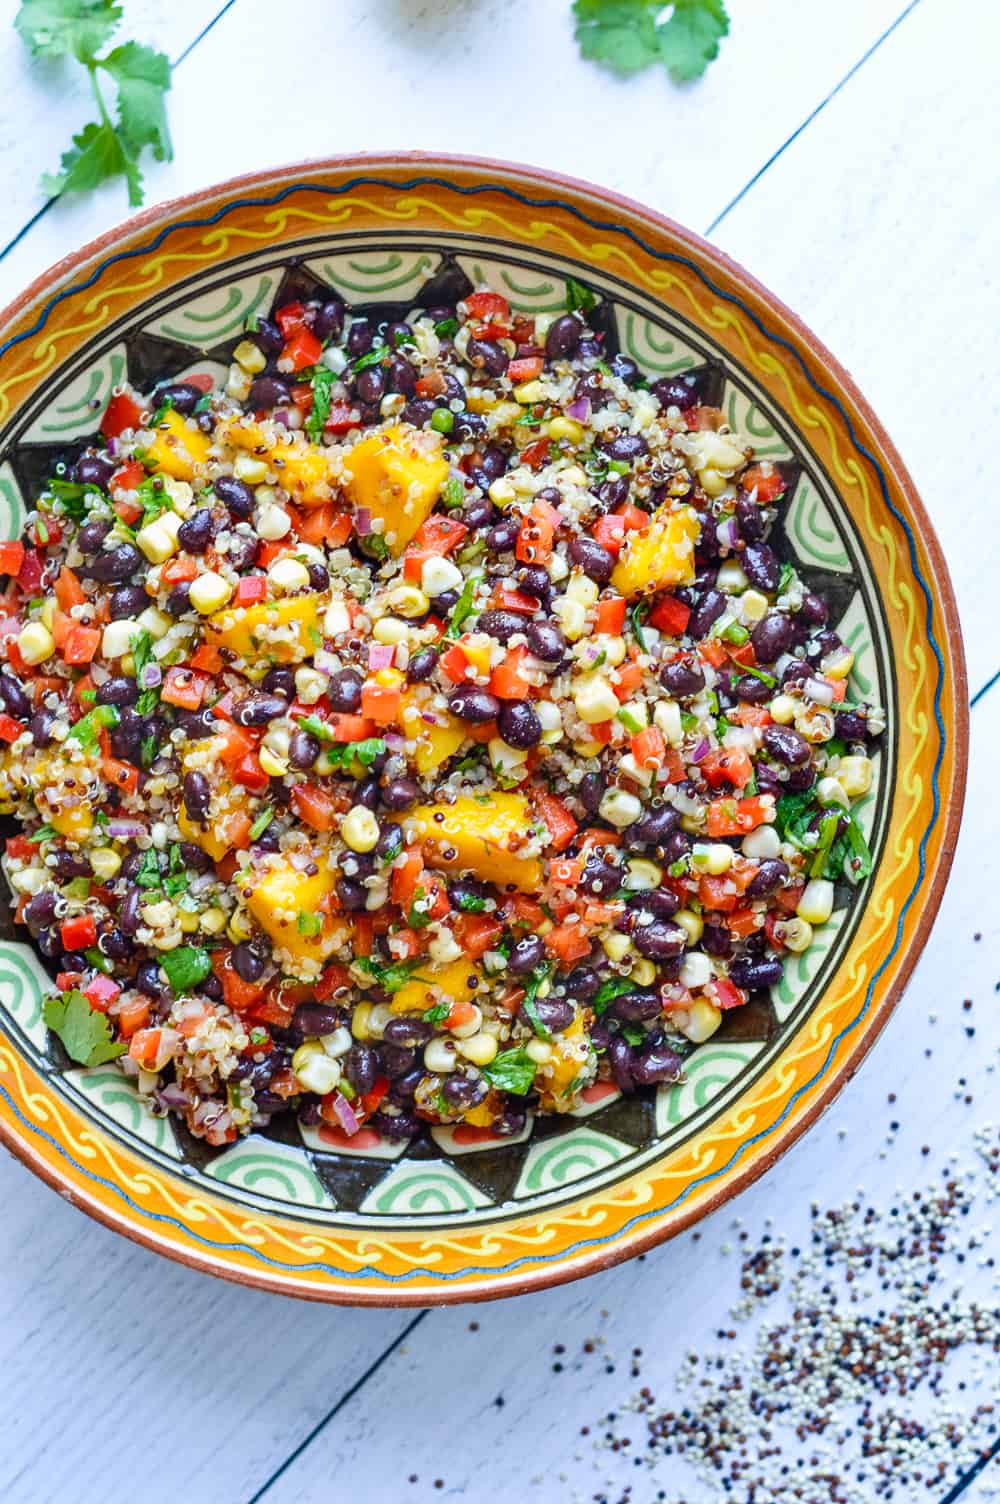 Southwestern Black Bean Salad with Quinoa & Mango overhead